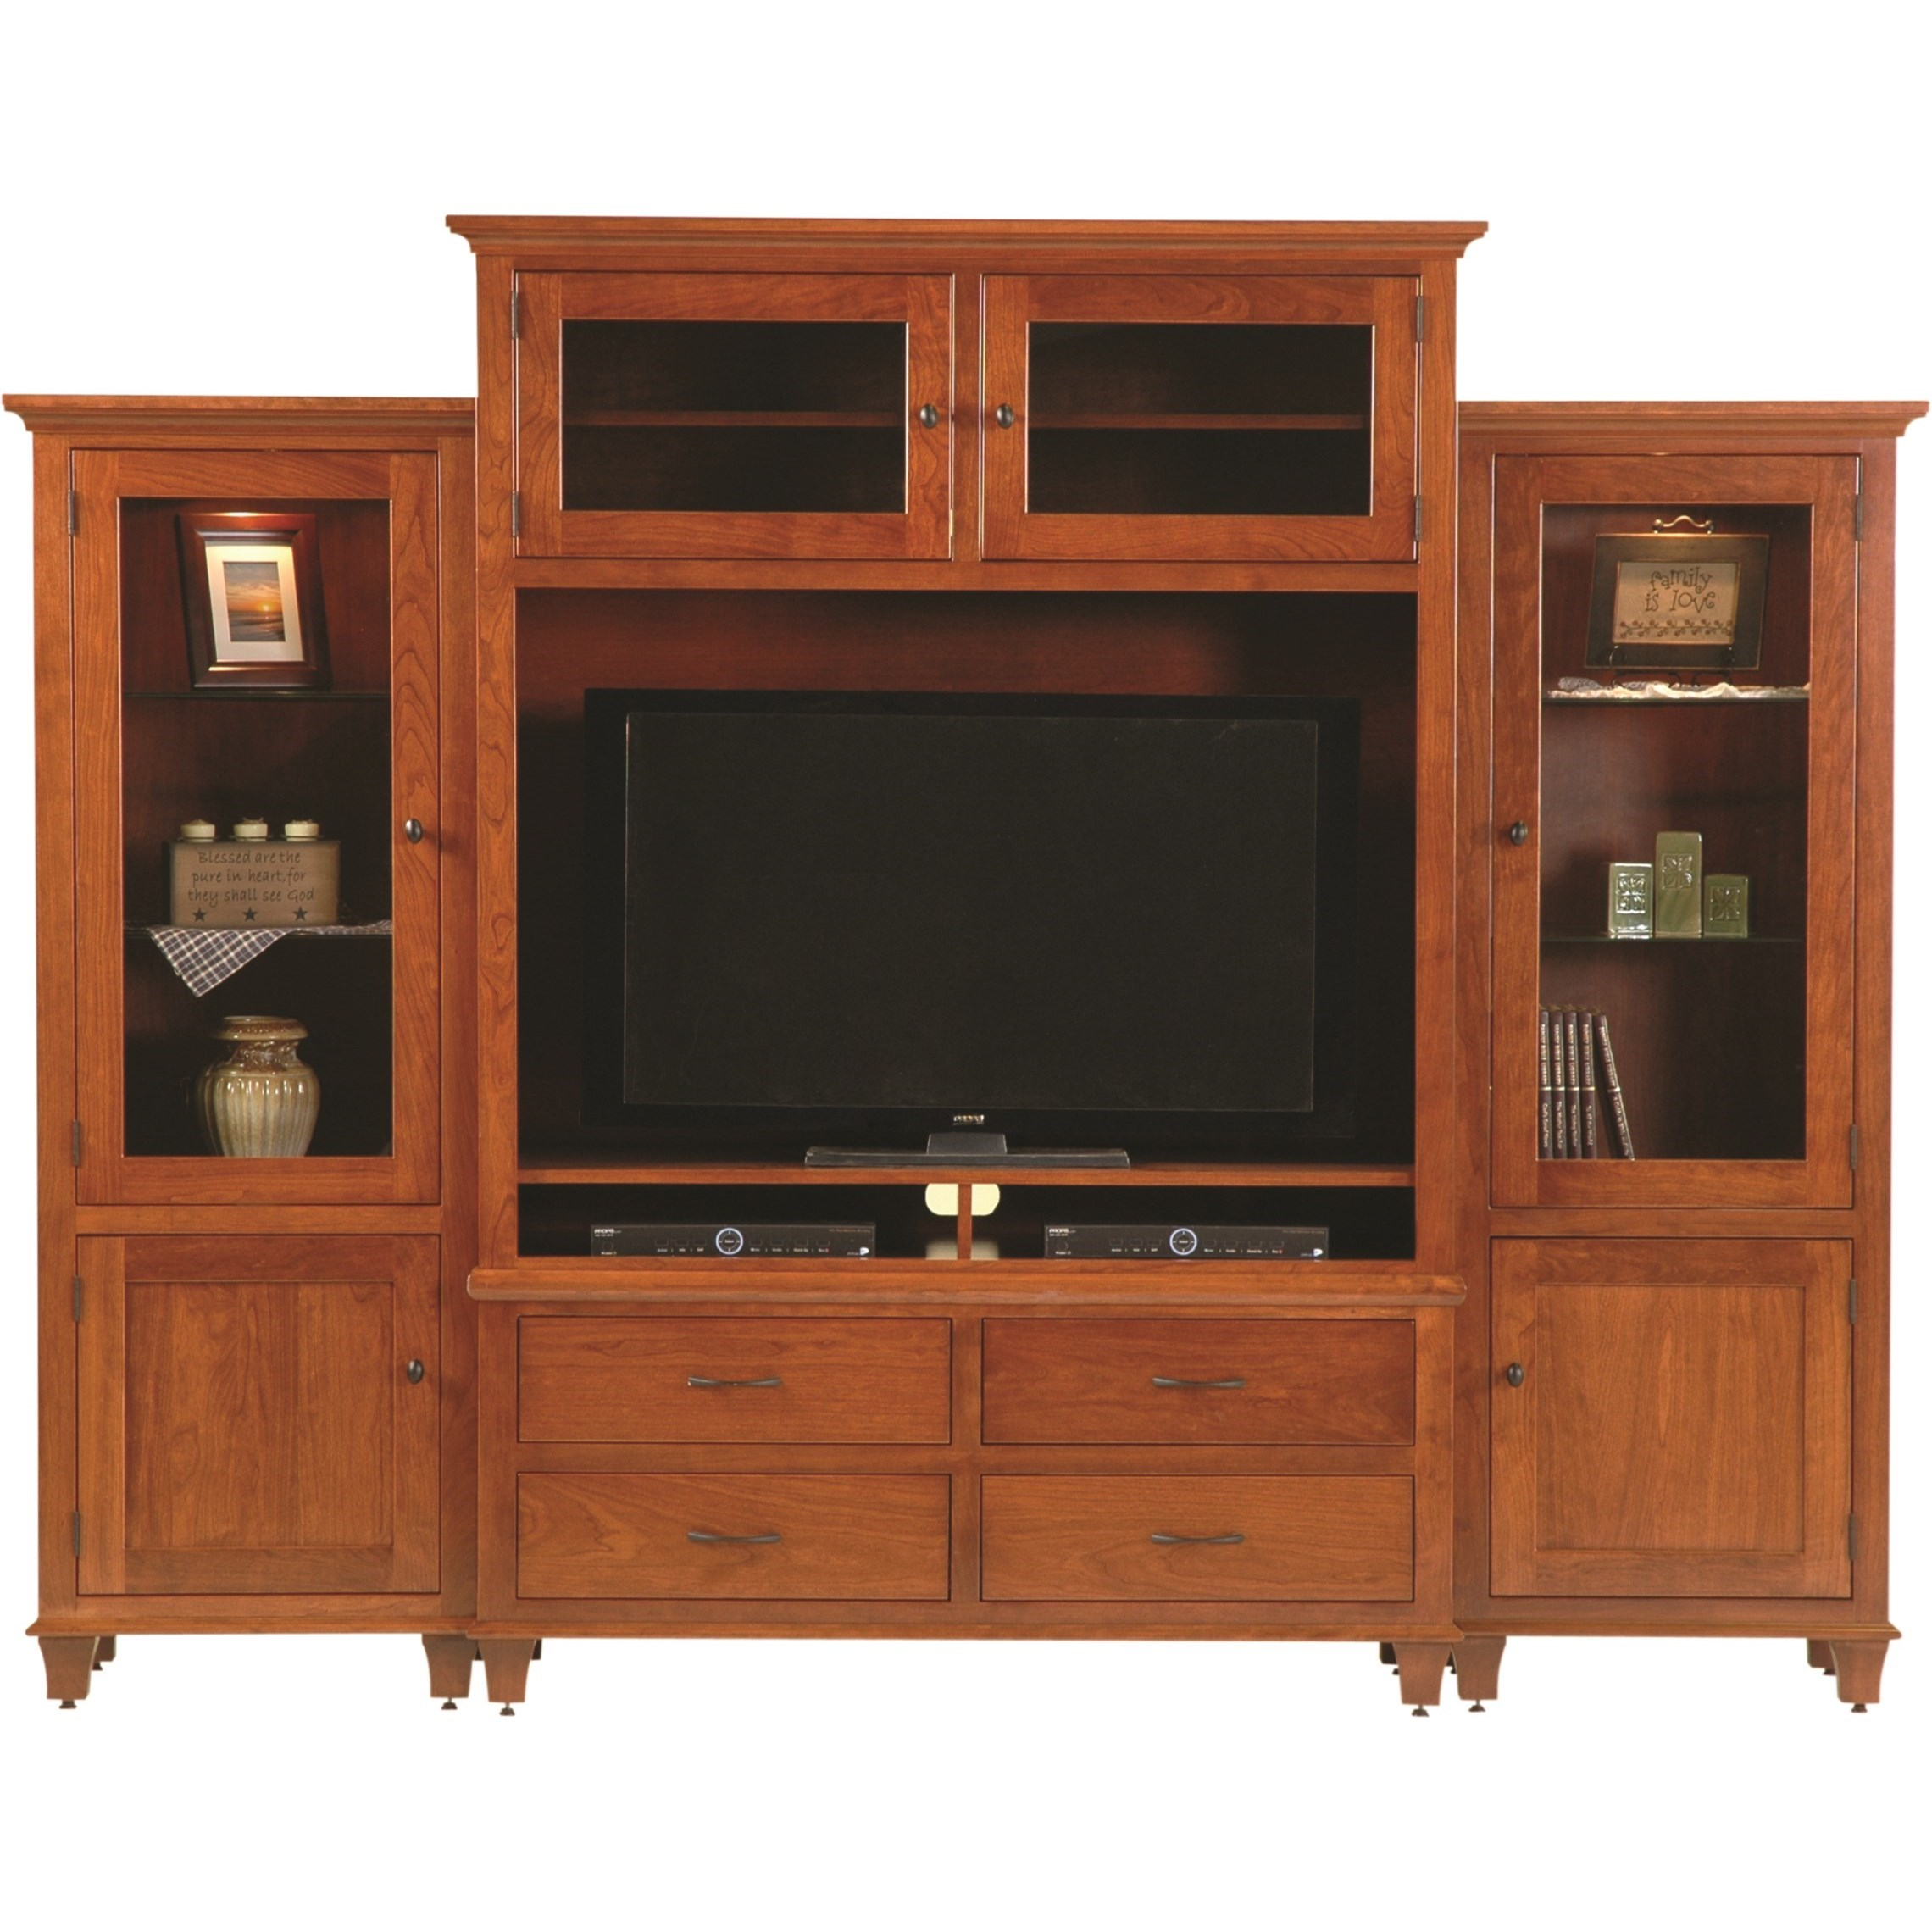 Entertainment Customizable Bourten Magnum Wall Unit by INTEG Wood Products at Saugerties Furniture Mart